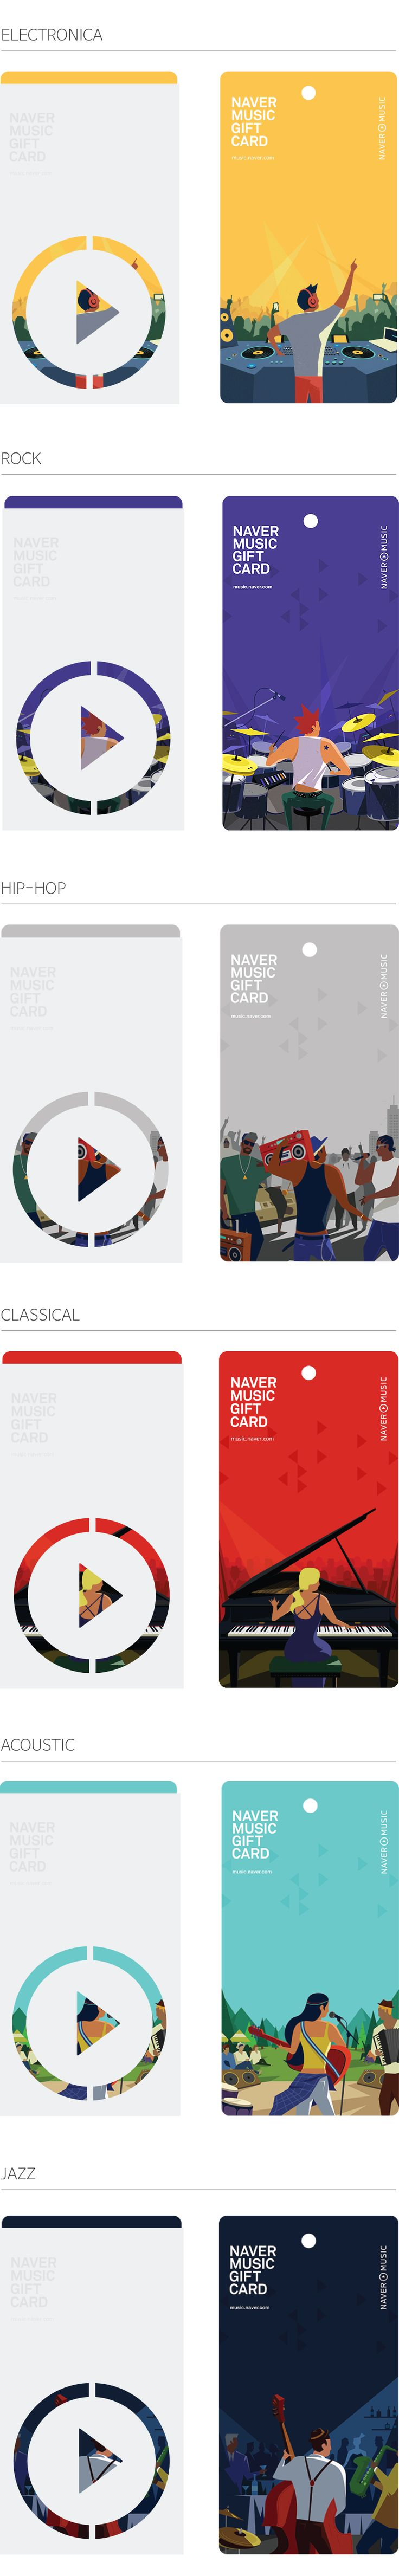 NAVER MUSIC GIFT CARDS on Behance